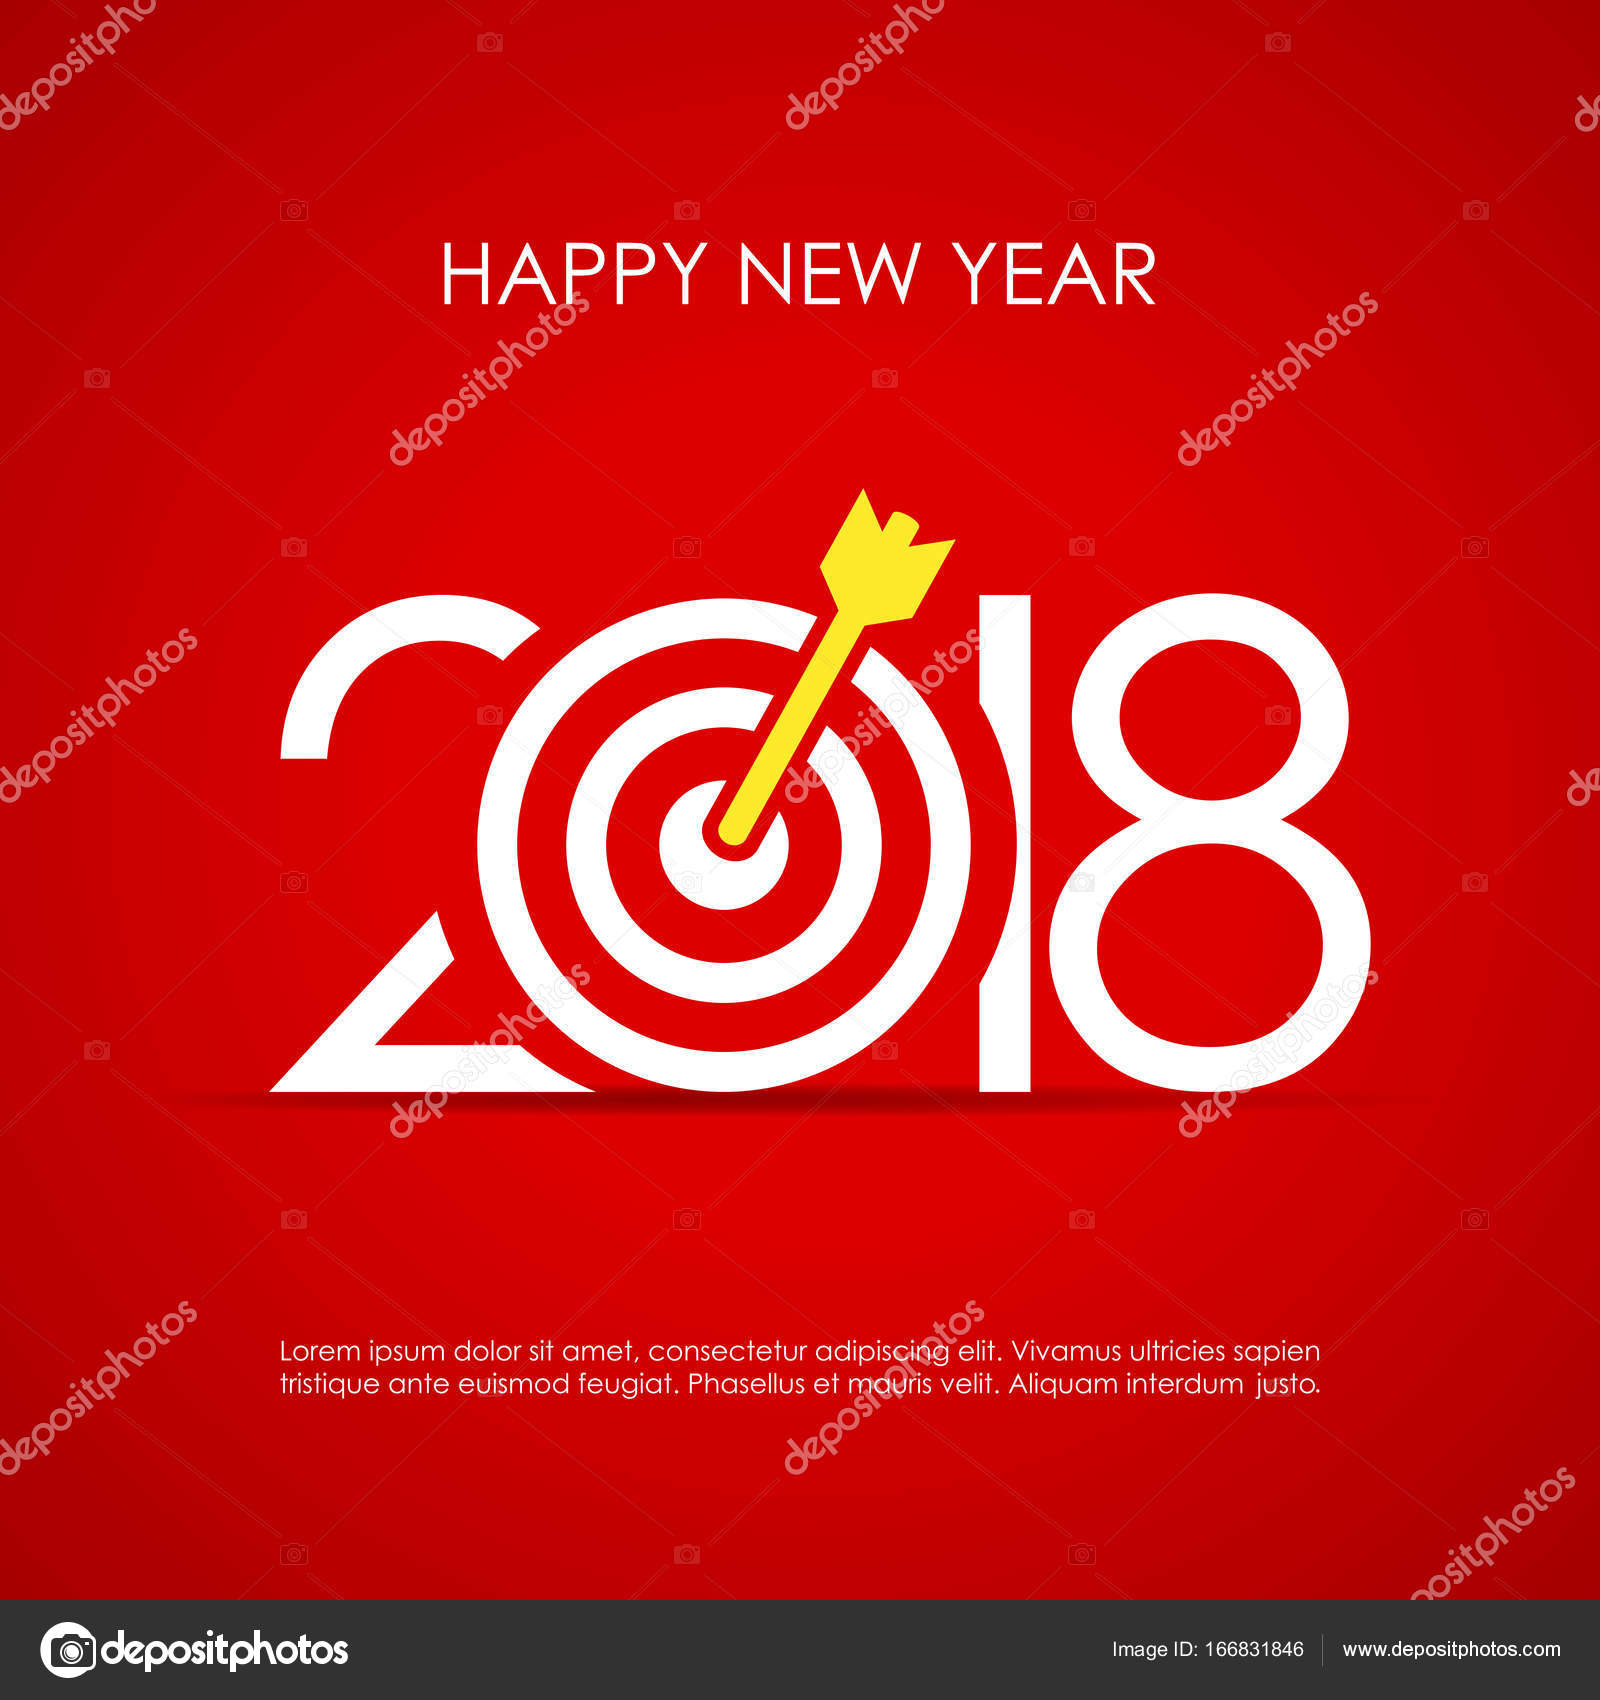 Happy 2018 New Year Greeting Card Design With Target Board Stock